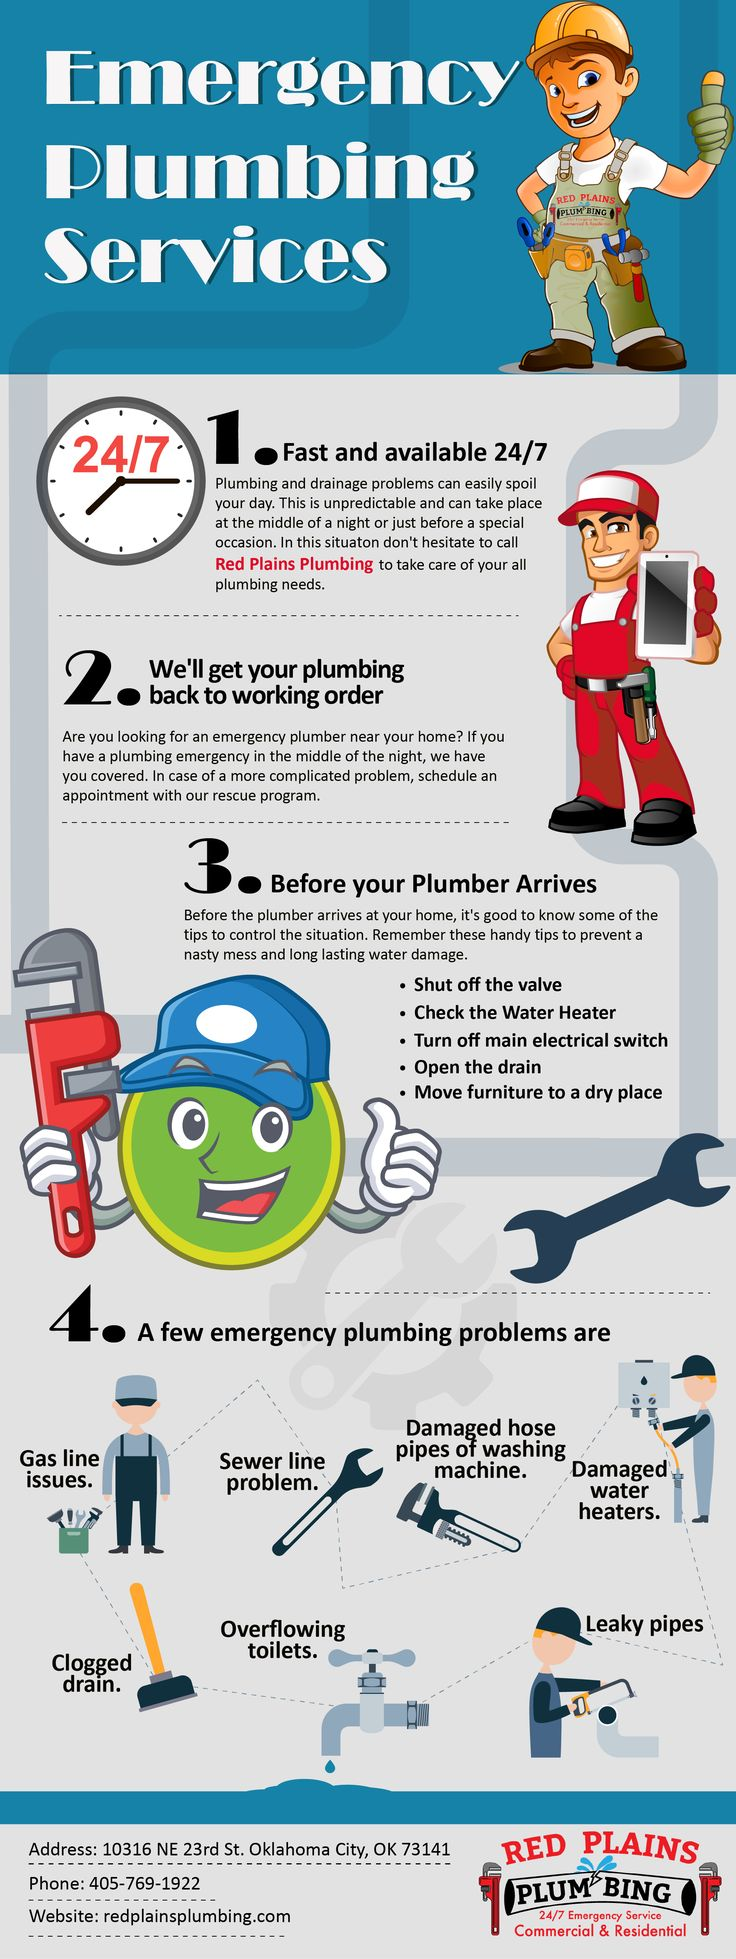 Red plains plumbing redplainsolumbing on pinterest